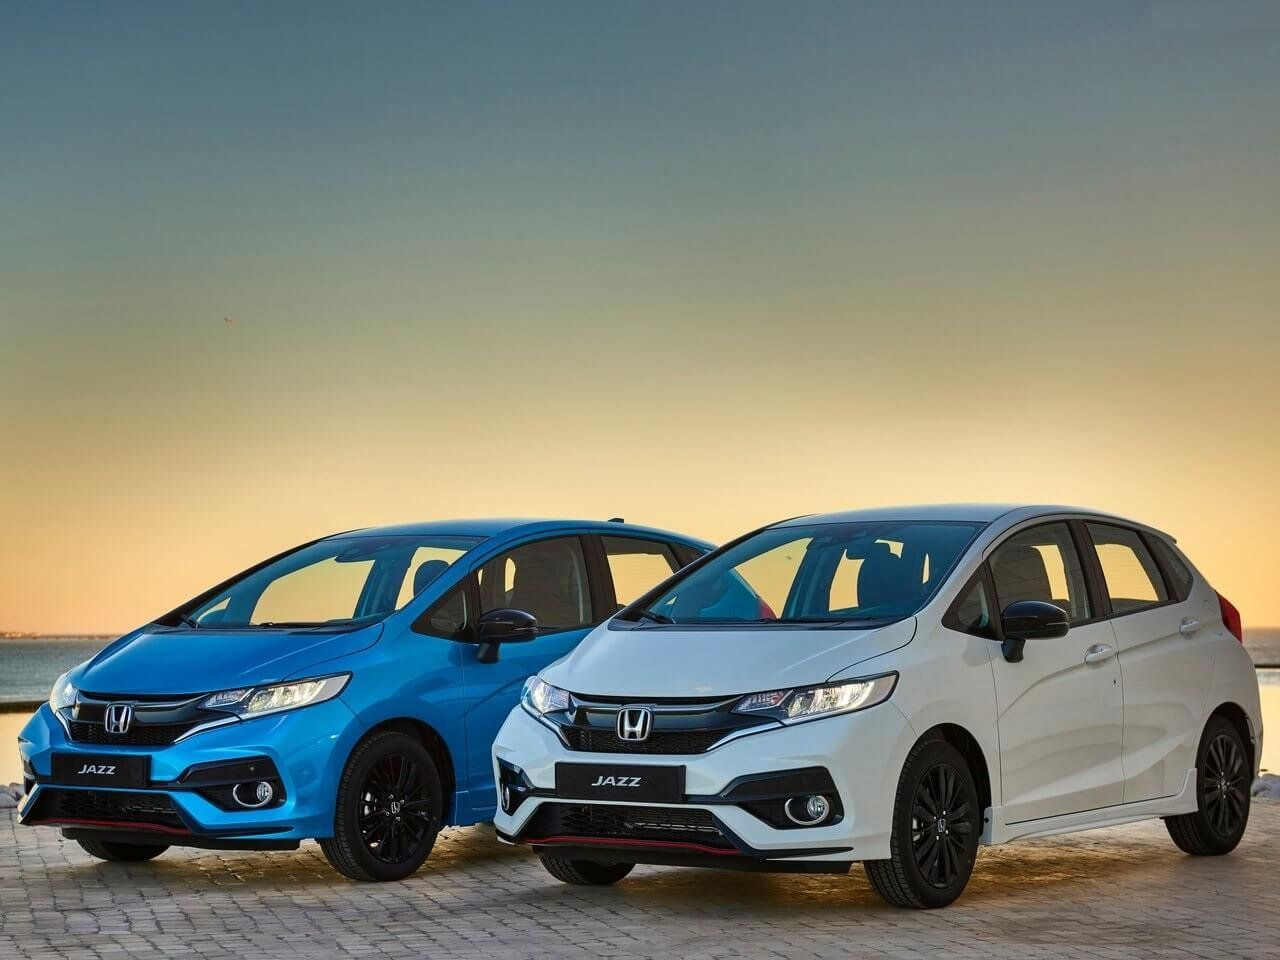 Honda Fit Redesign 2020 Price And Review From 2020 Honda Fit Hybrid Rumors Photo Gallery 2020 Honda Fit Rs Inside Honda F Honda Jazz Honda Fit Honda Fit Lx